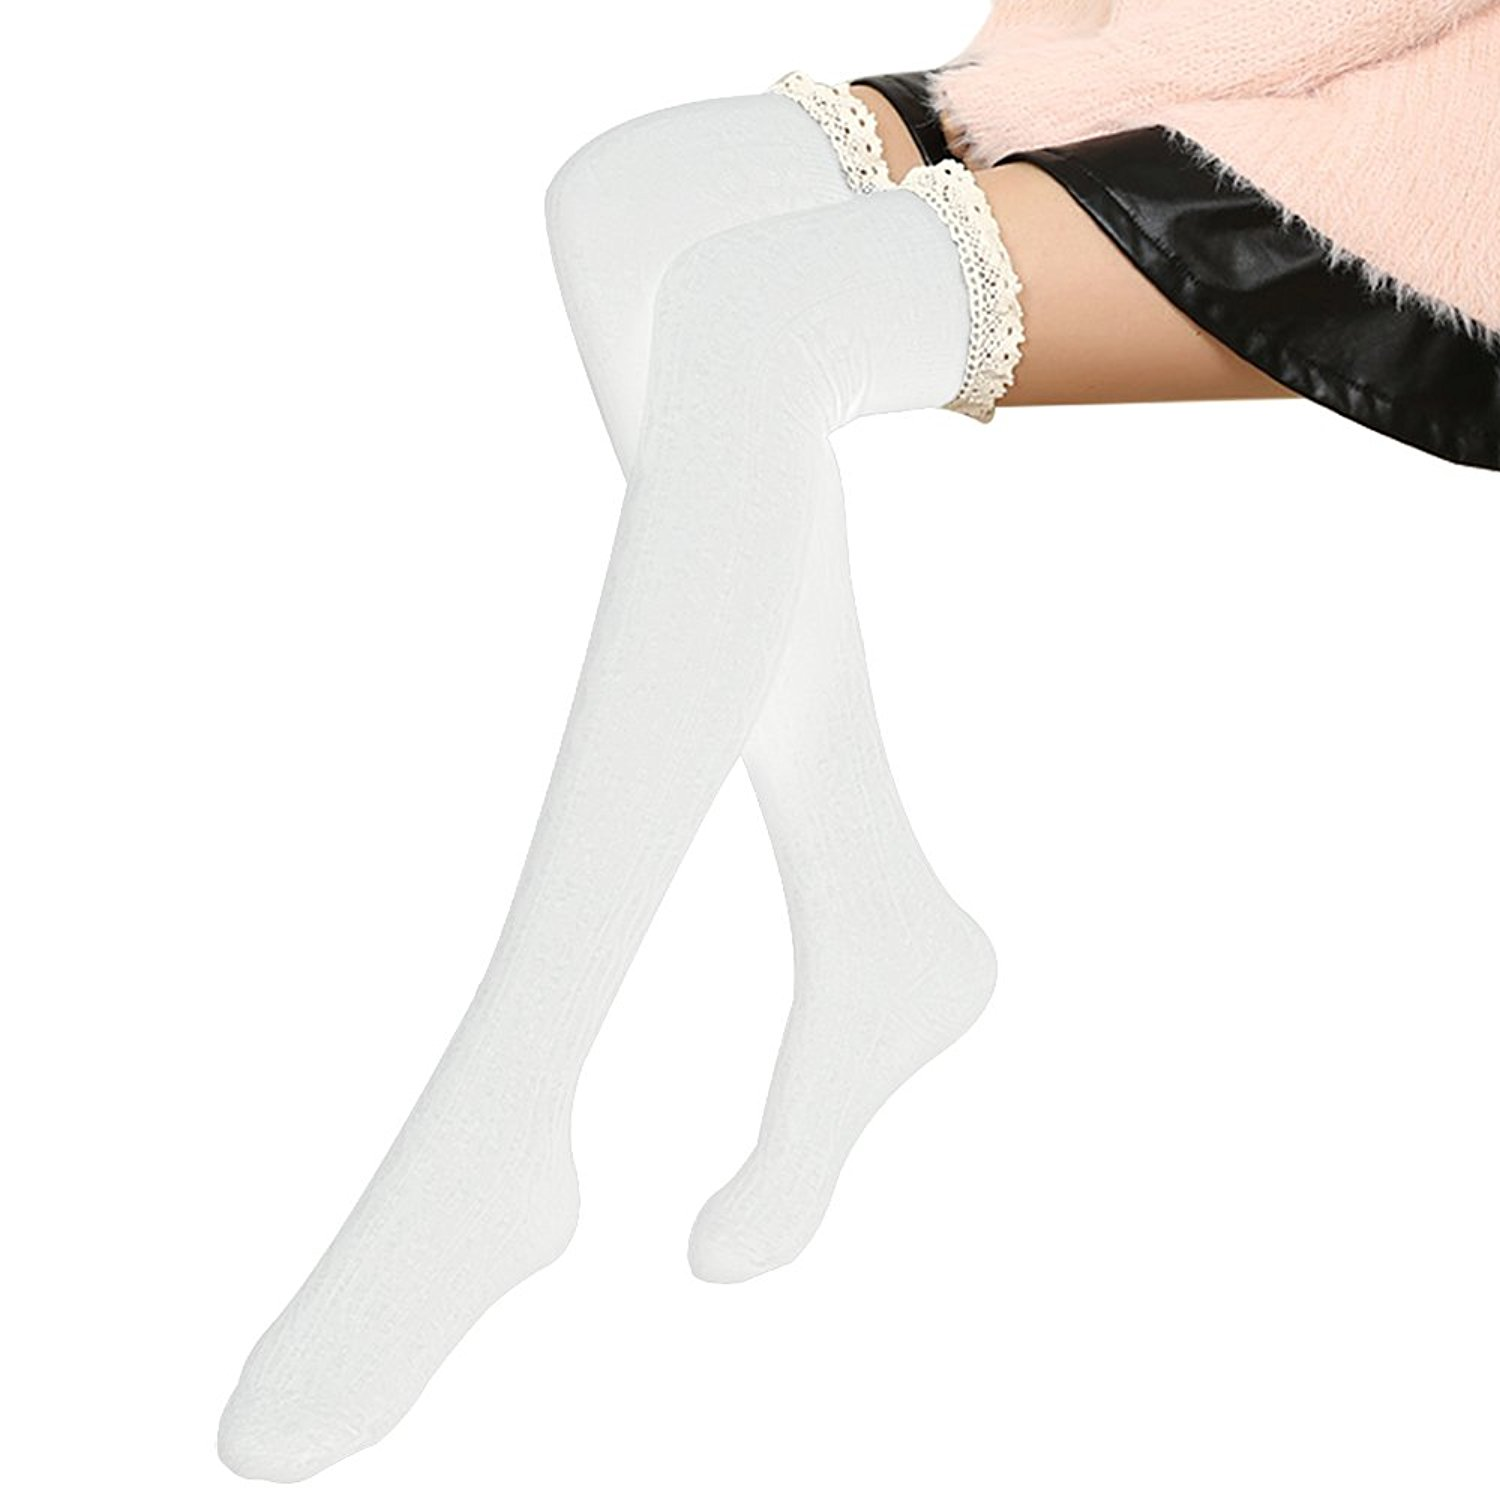 36ccb8c4b Get Quotations · Hippih Women s Thigh High Socks Winter Cable Knit Lace Over  Knee Socks